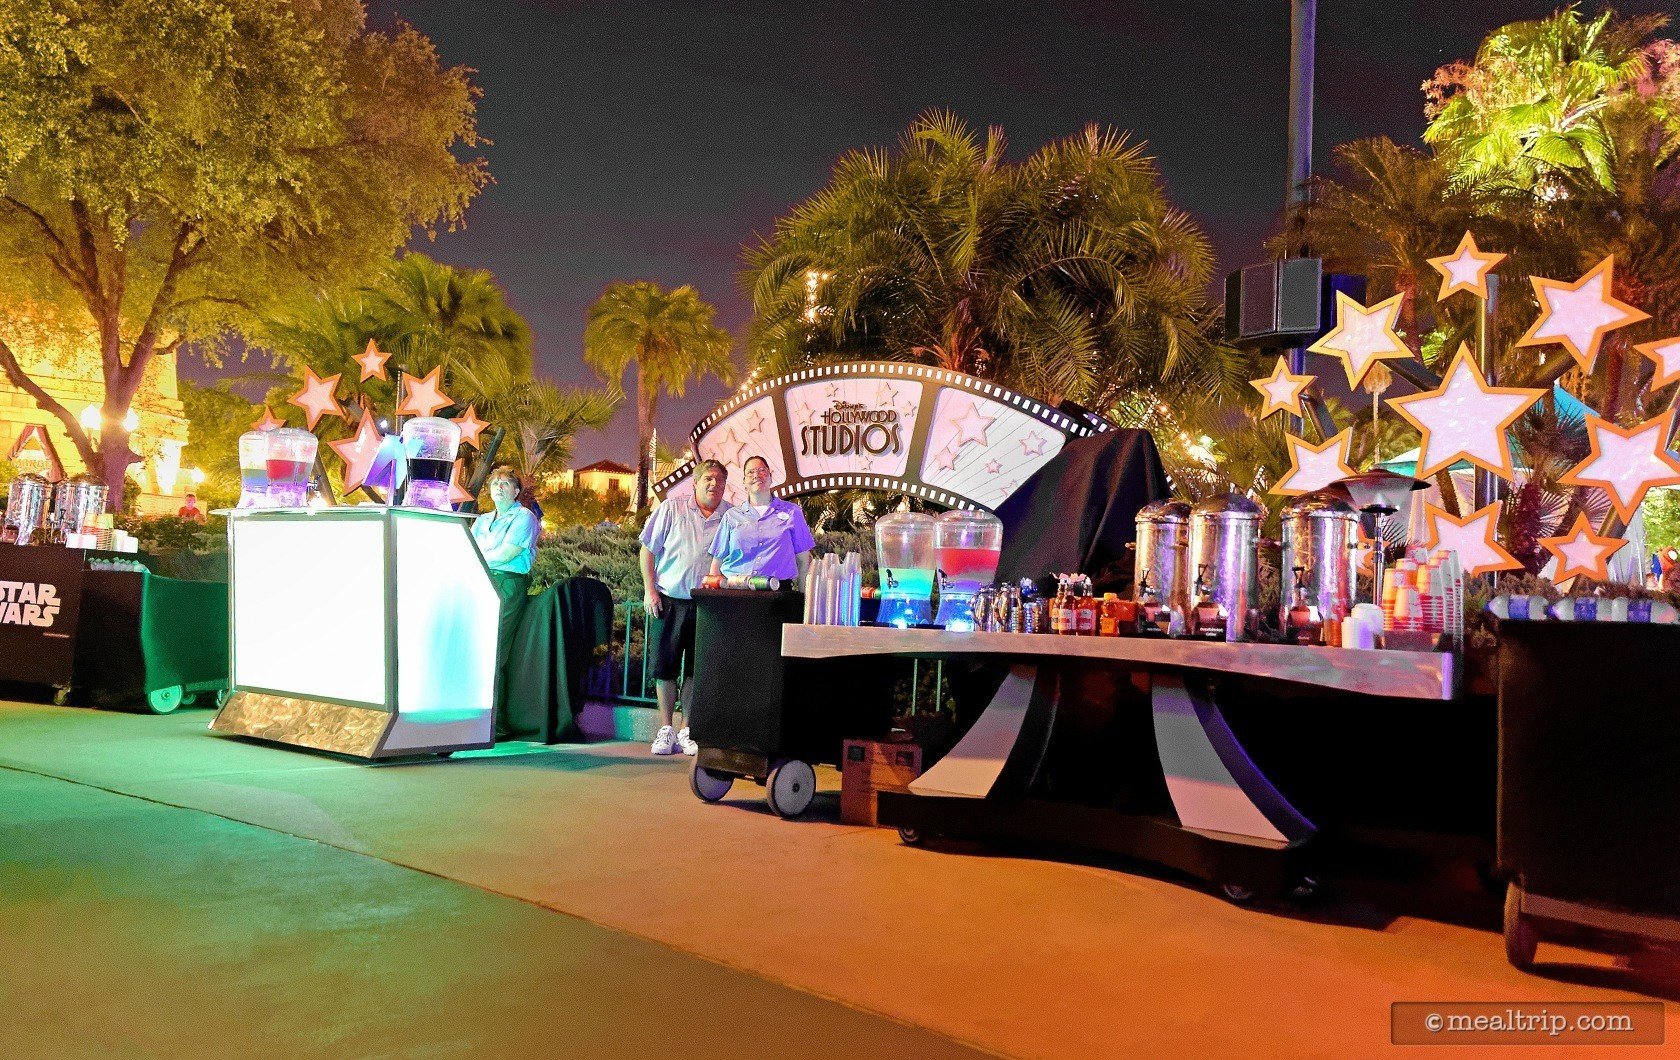 Star Wars Galactic Dessert Party  Holiday Additions ing To Disney s Hollywood Studios